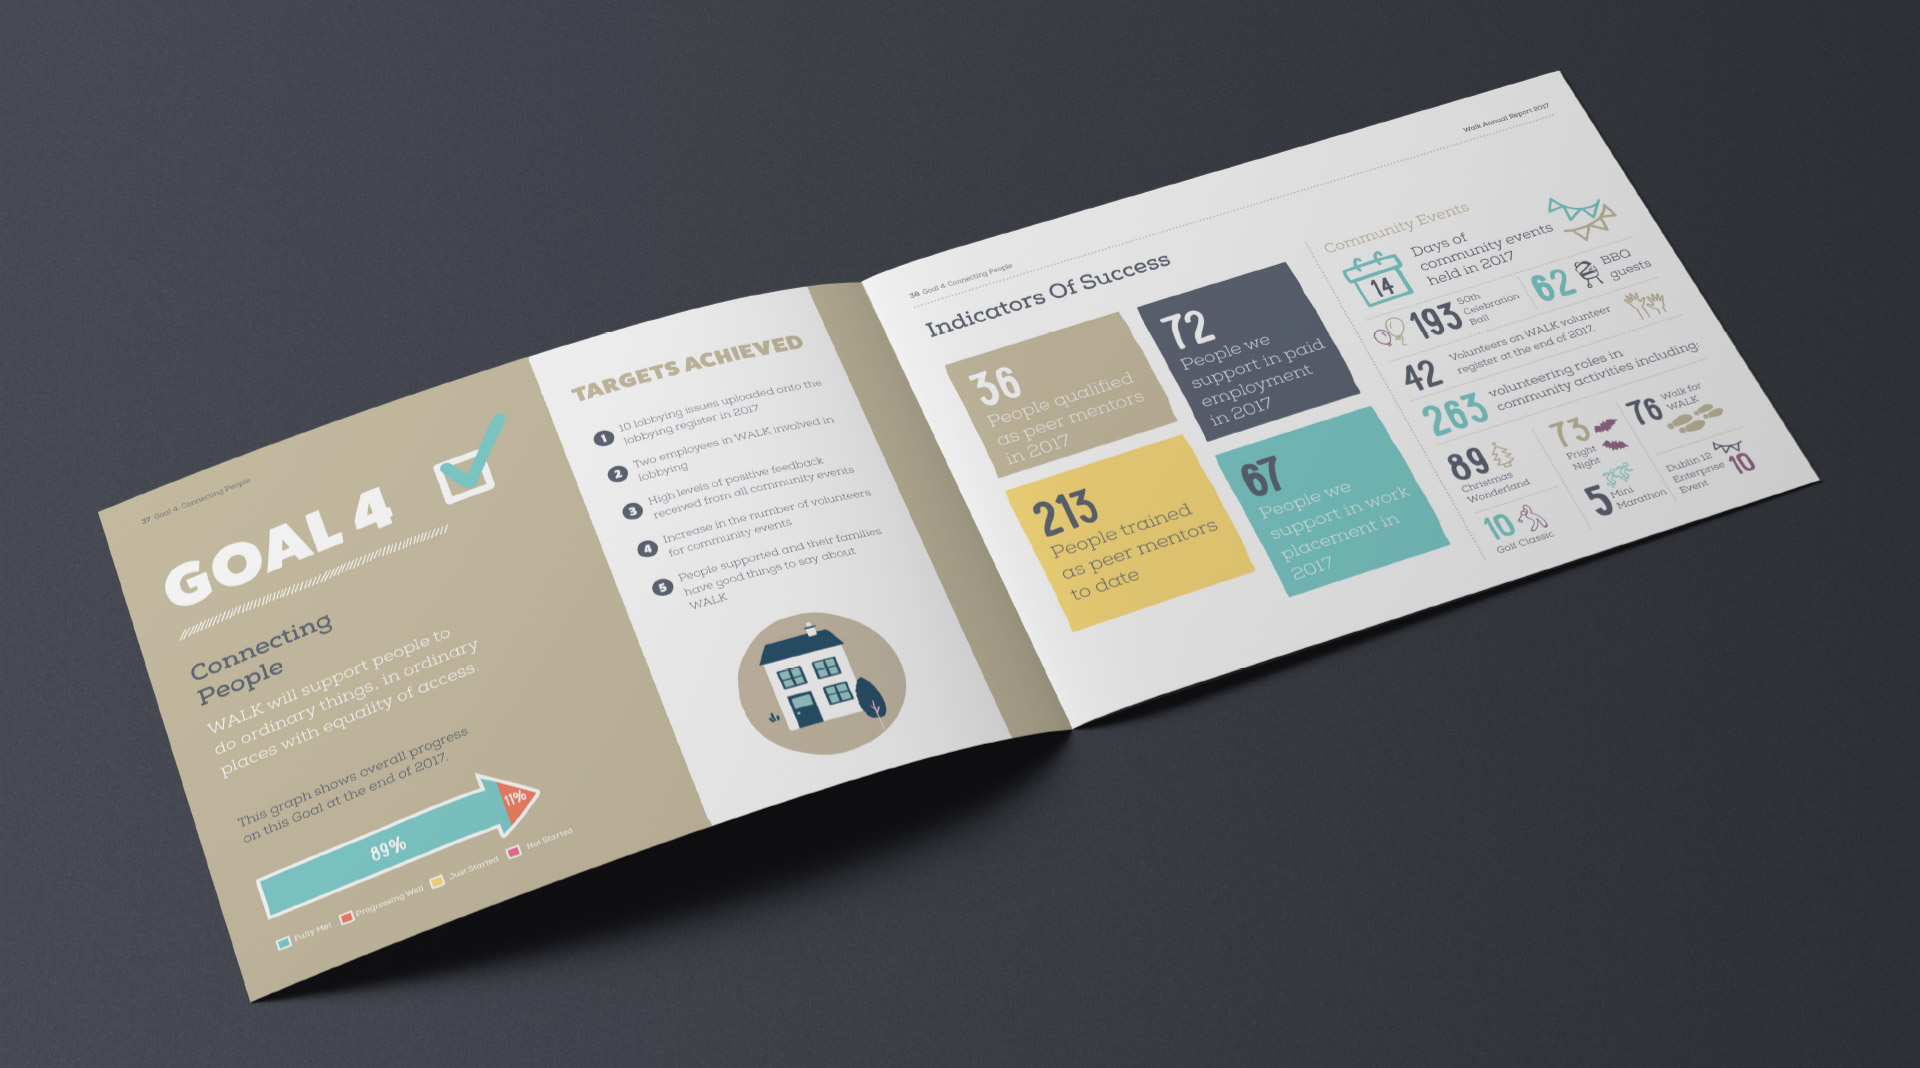 WALK annual report infographic design.